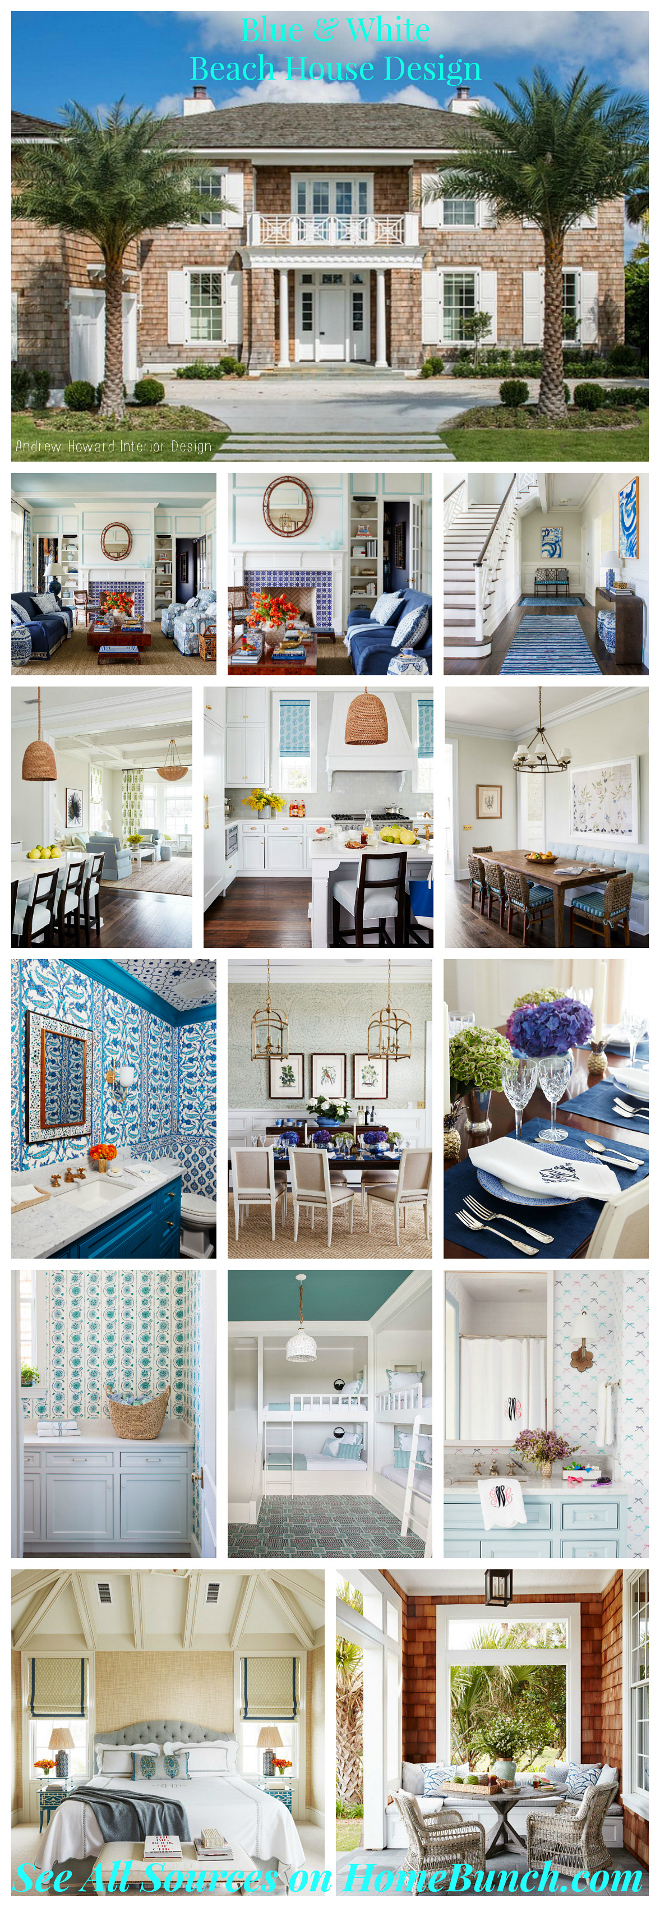 Blue and White Beach House Design. Blue and White Beach House Design Ideas. Blue and White Beach House Design #BlueandWhite #BeachHouseDesign